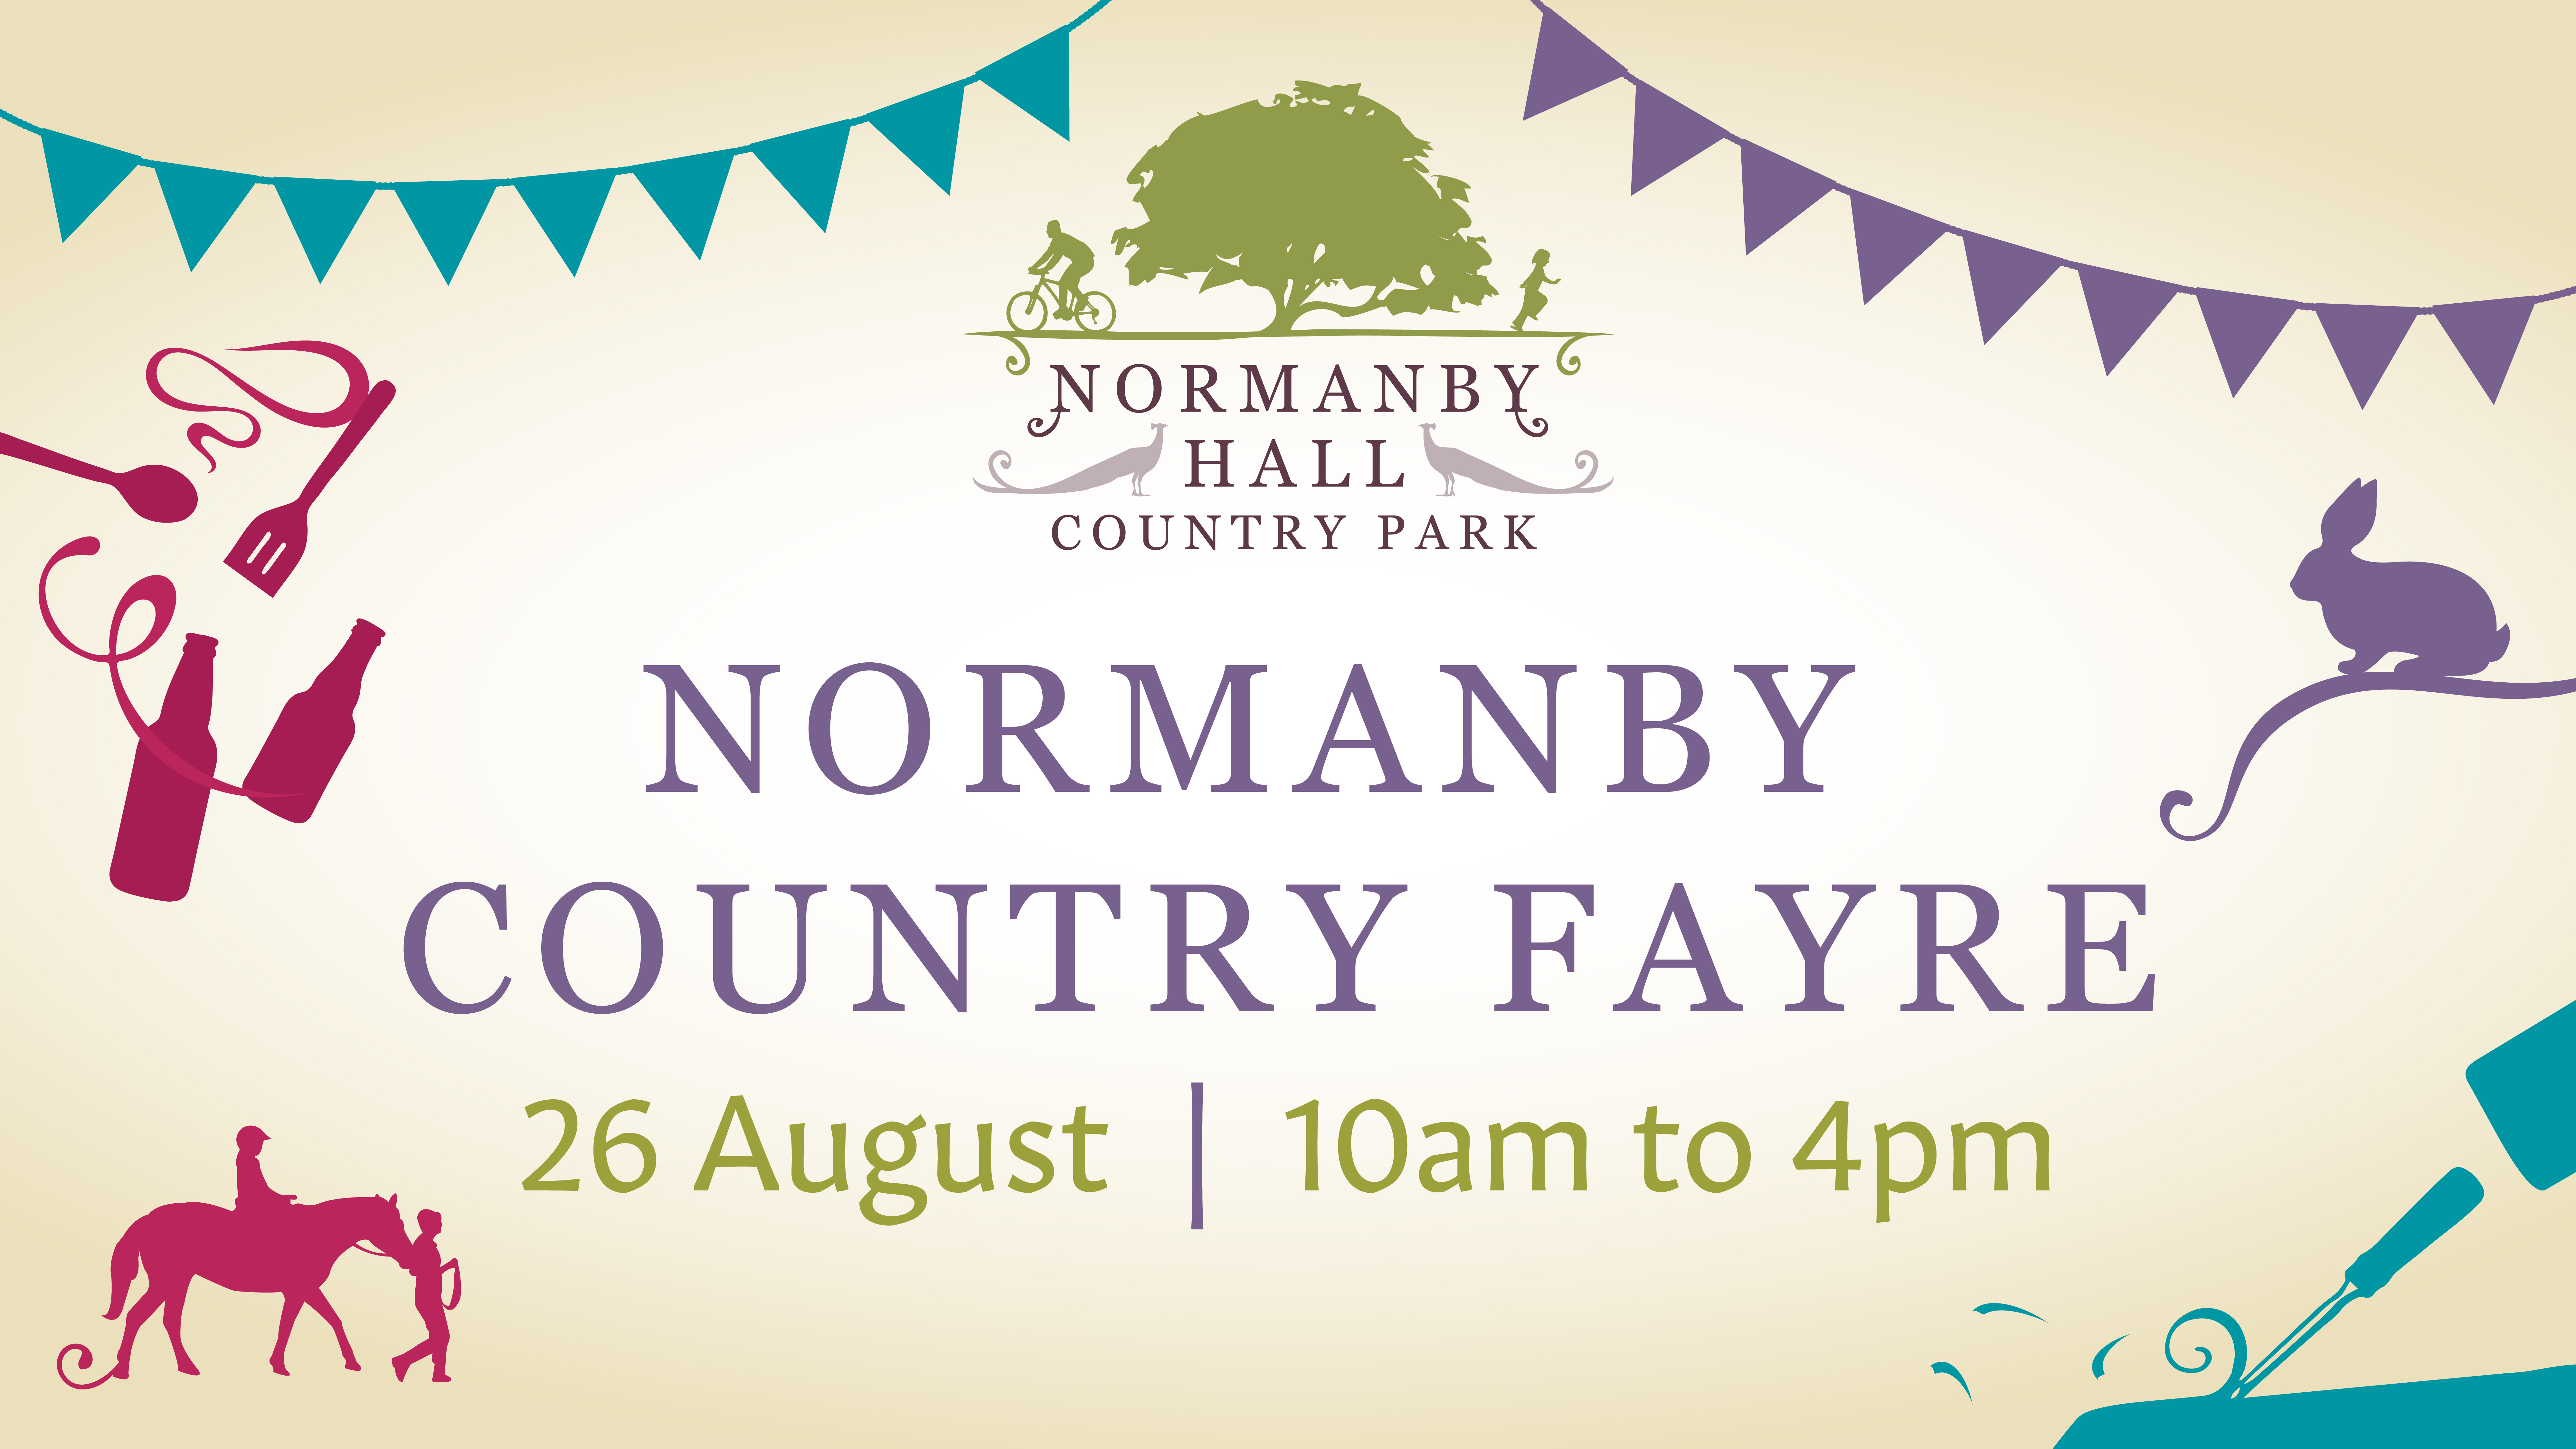 Normanby Country Fayre graphic